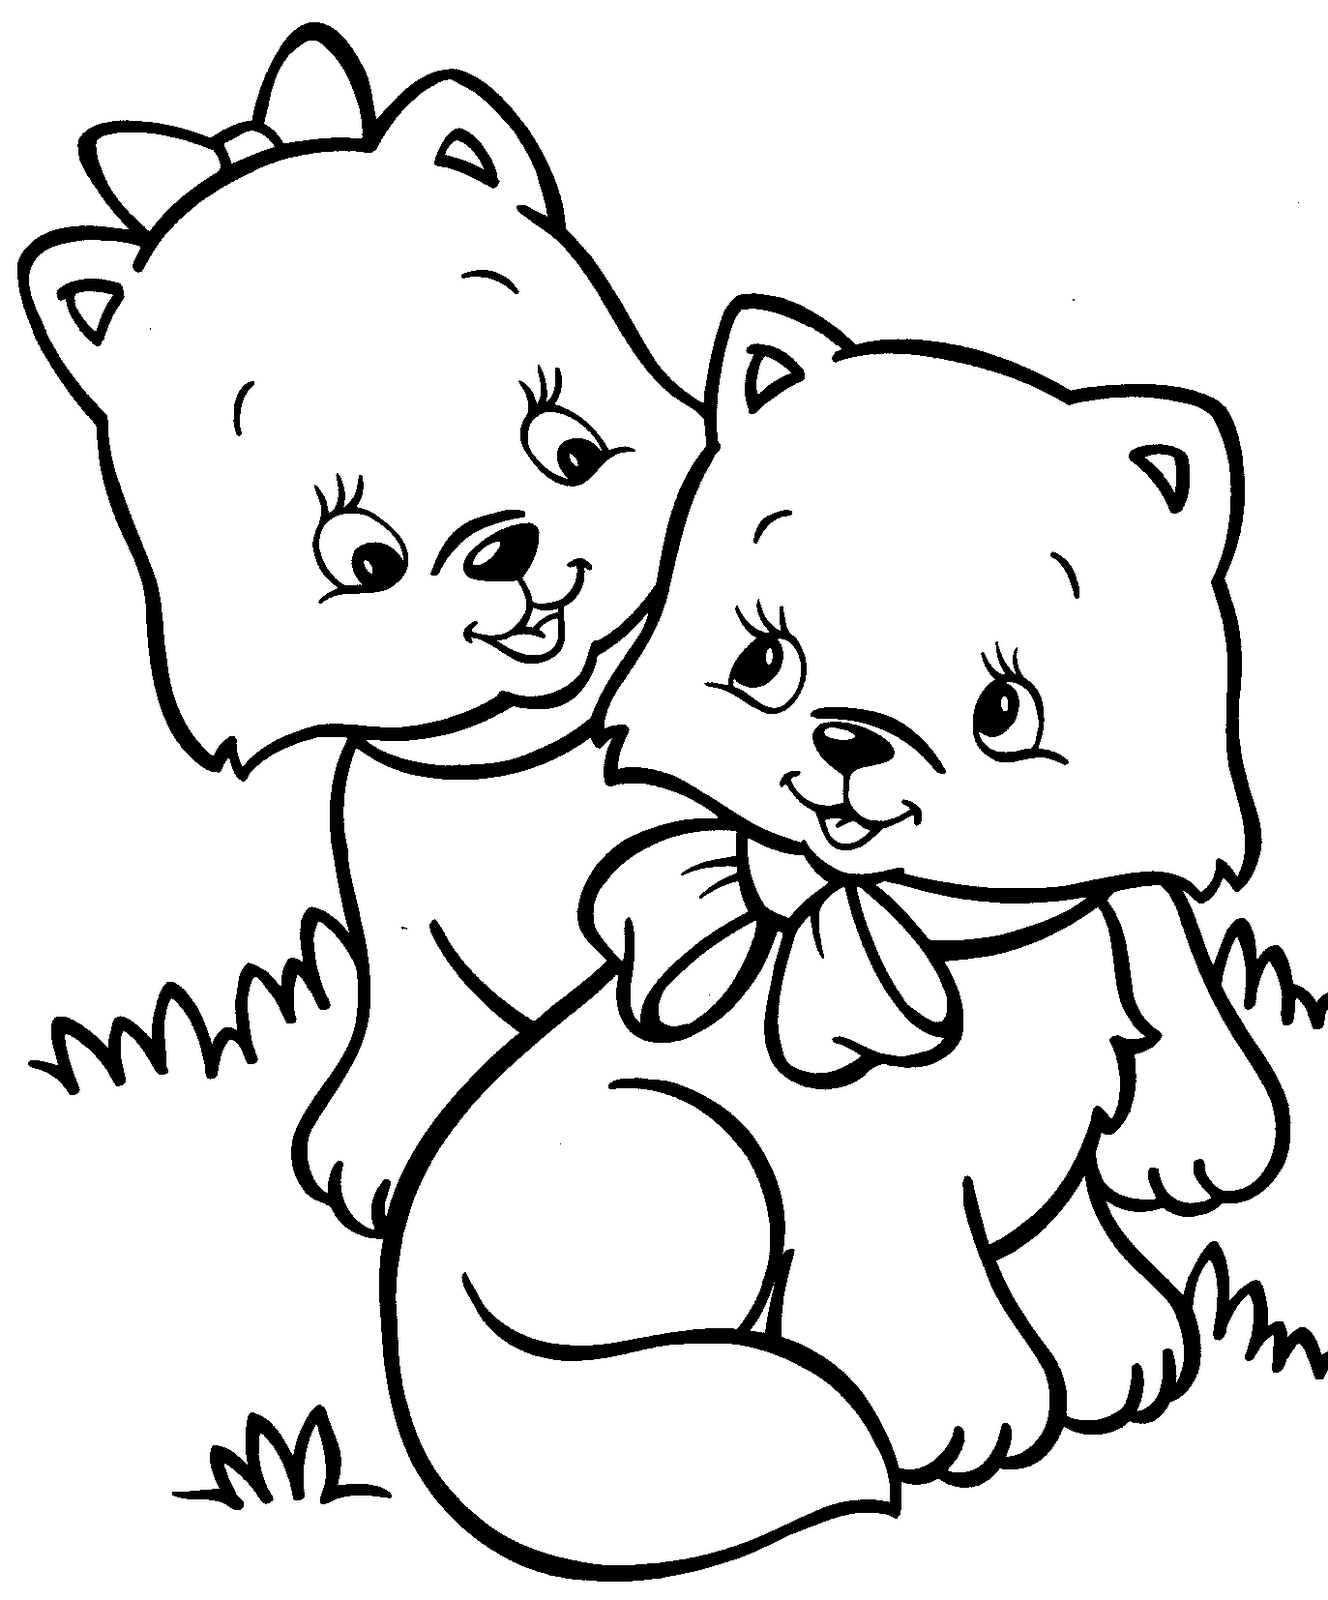 coloring pages kitten kitten coloring pages best coloring pages for kids coloring pages kitten